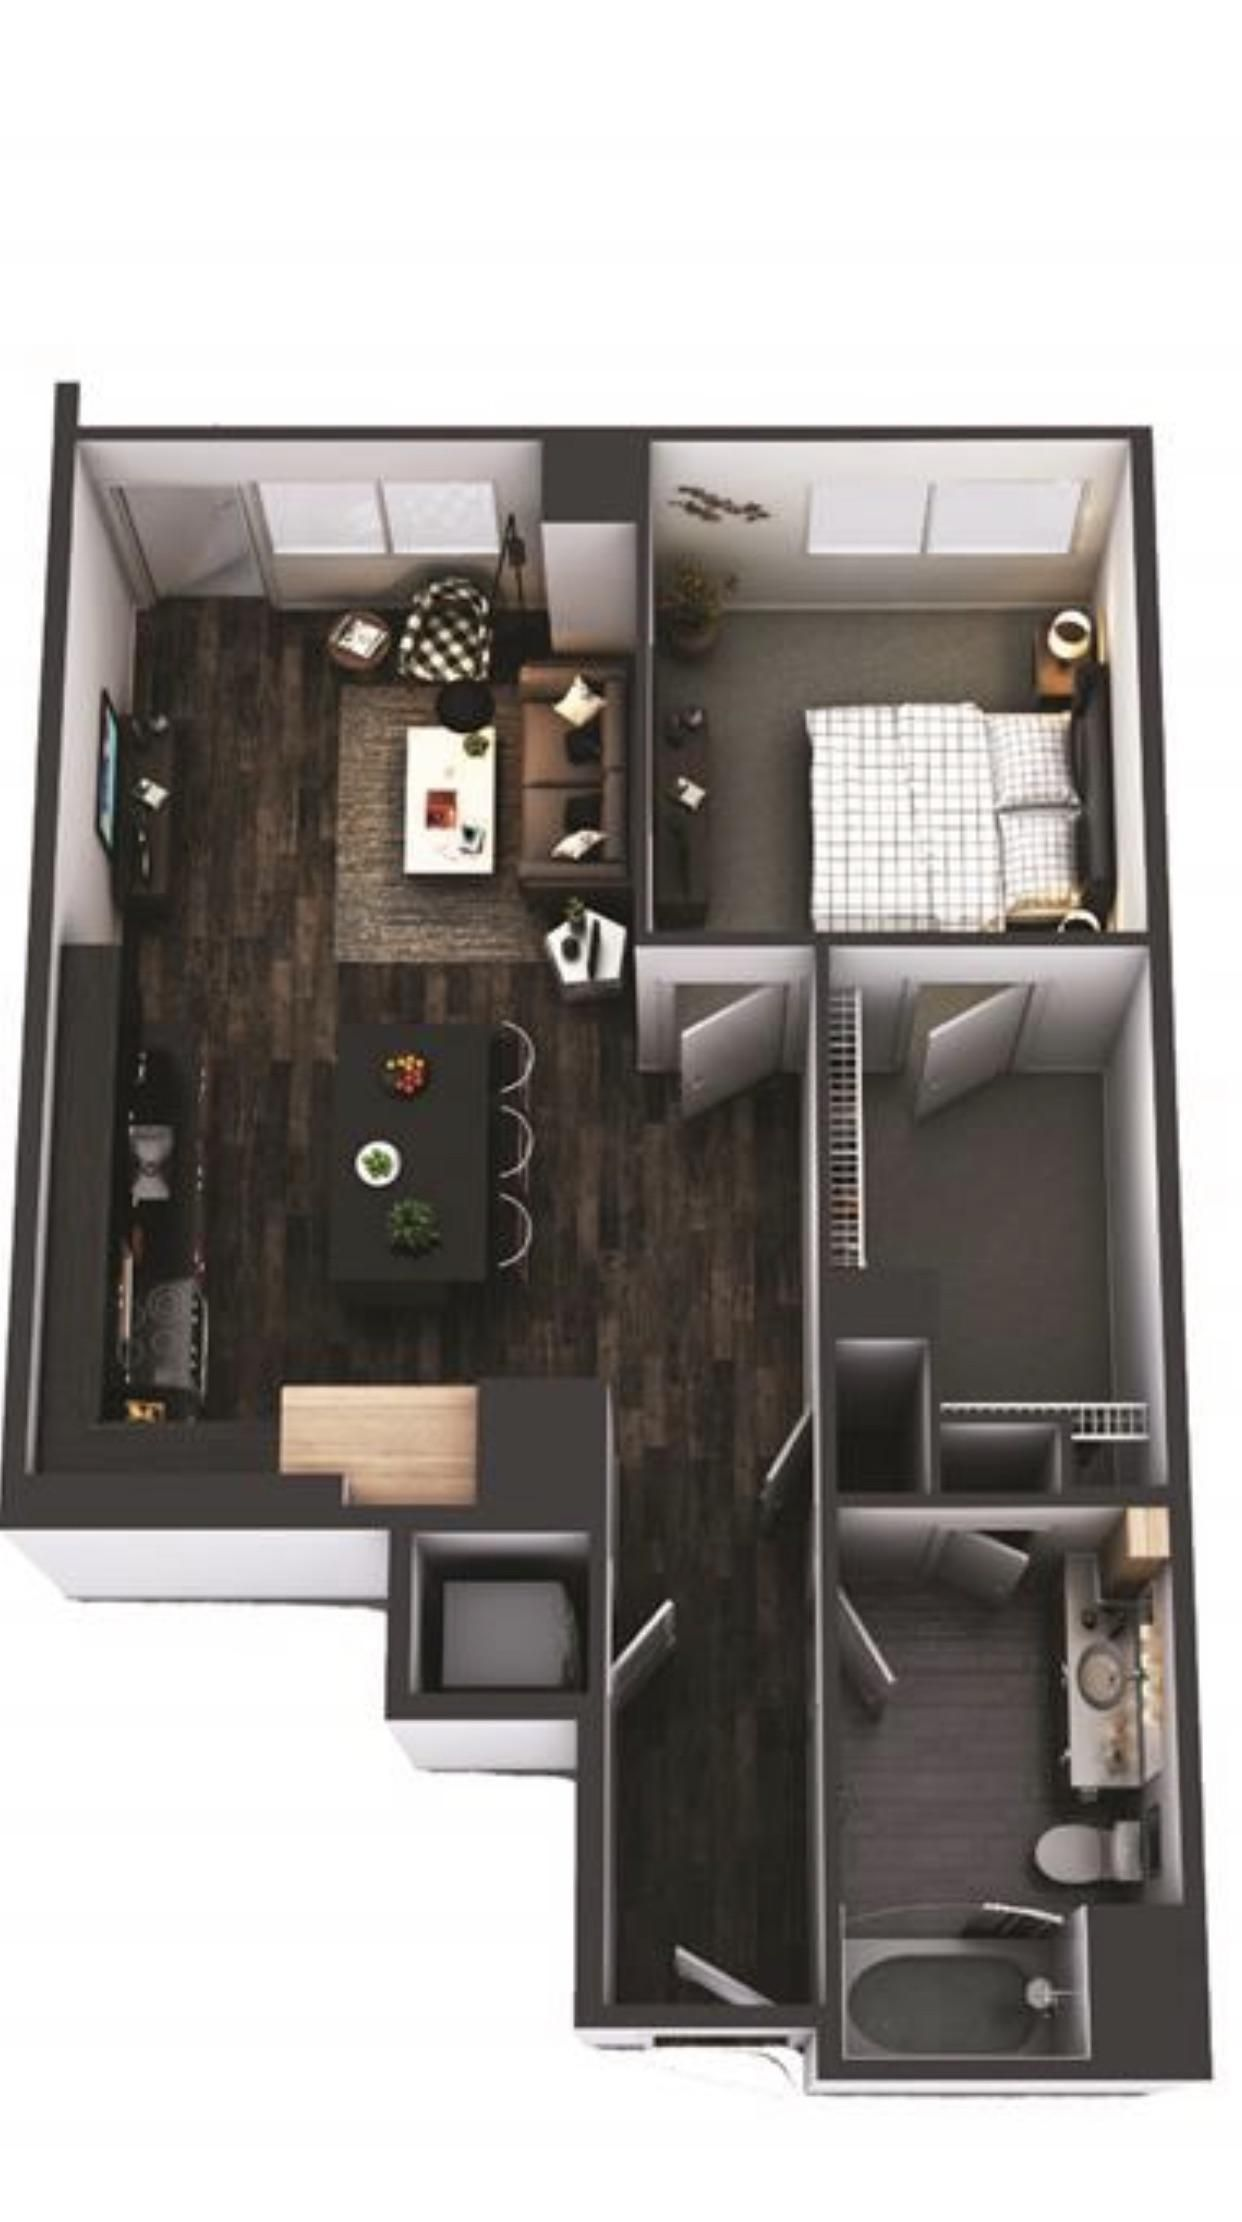 Ideas For Furniture Layout In A 780 Sq Ft One Bedroom Floor Plan And Real Photos In Comments Https Apartment Layout Bedroom Flooring Apartment Floor Plans